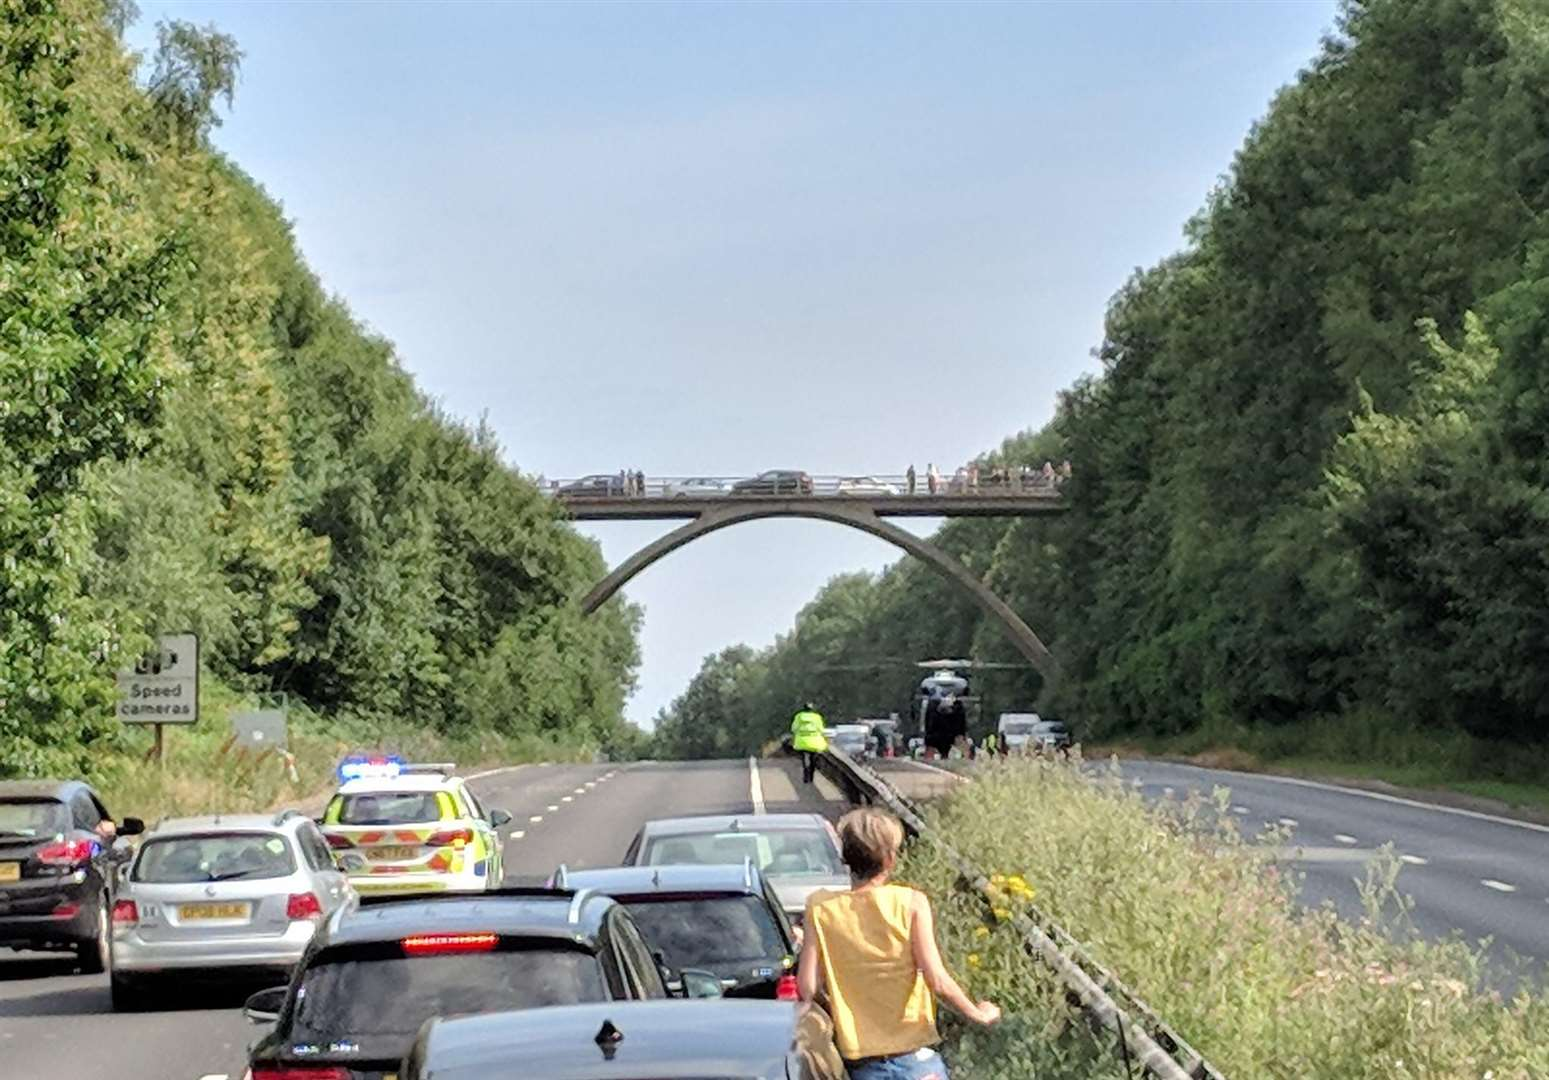 Woman dies after falling from bridge onto carriageway